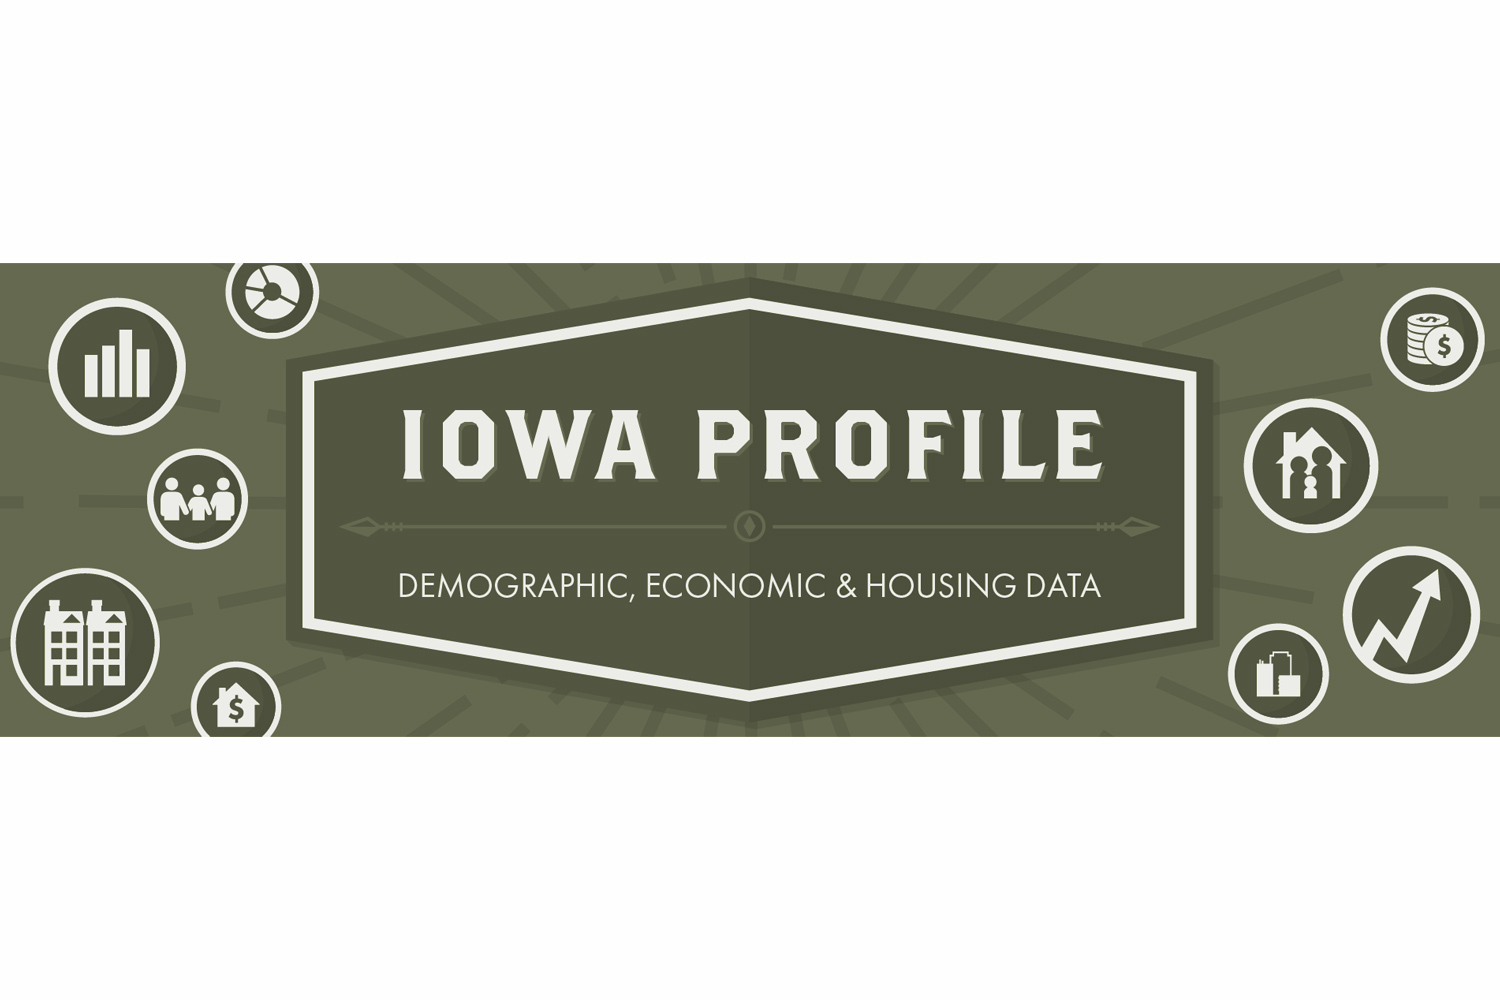 An illustration of the Iowa Profile cover.